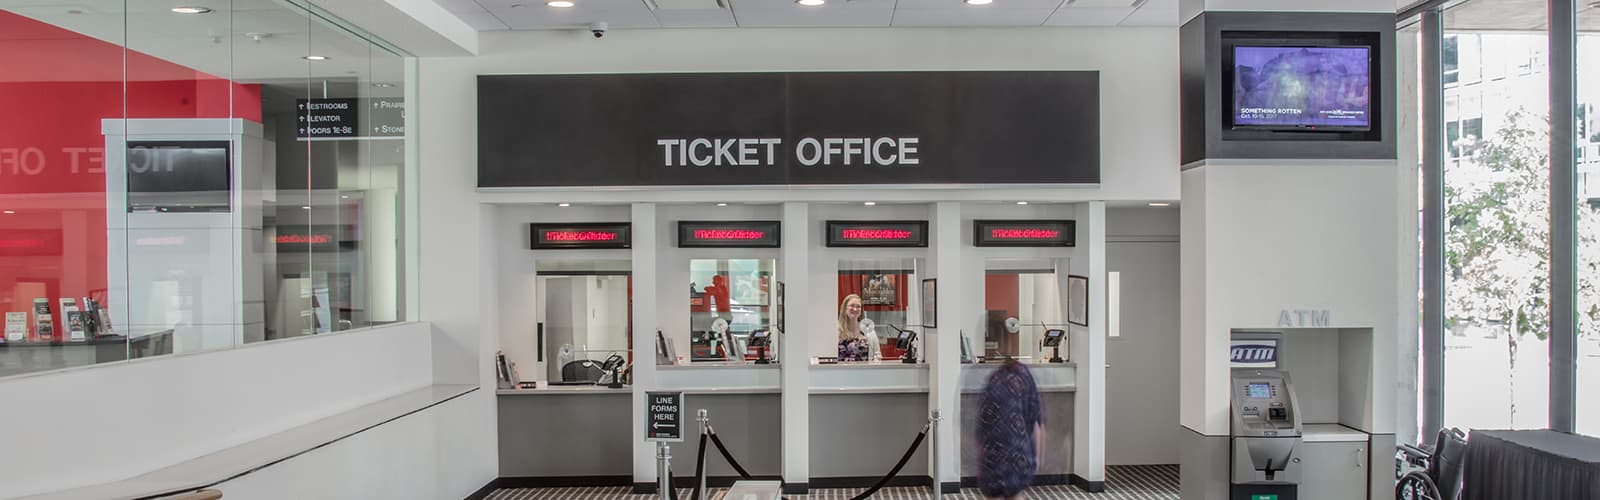 Ticket Office Policies Des Moines Performing Arts